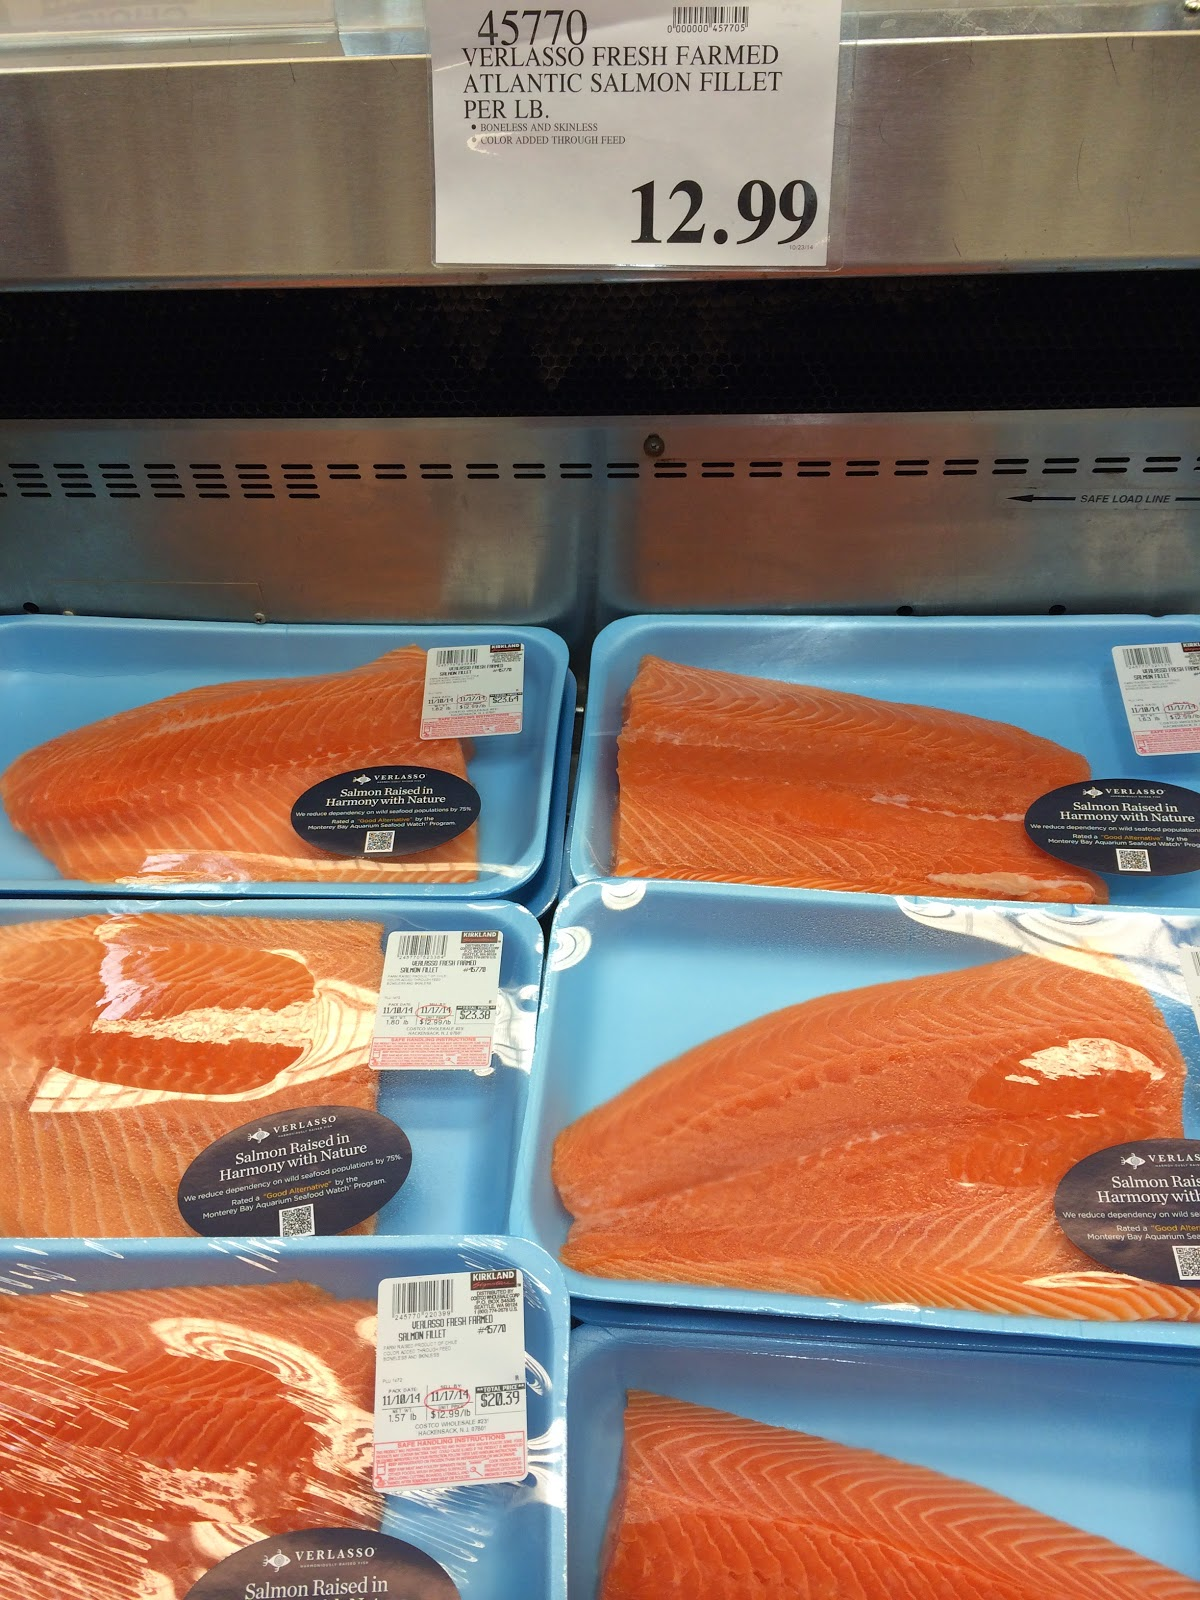 do you really know what you re eating new at costco whole at 12 99 a pound this artificially colored farmed atlantic salmon costs more than the fresh wild sockeye salmon i bought at costco whole in hackensack